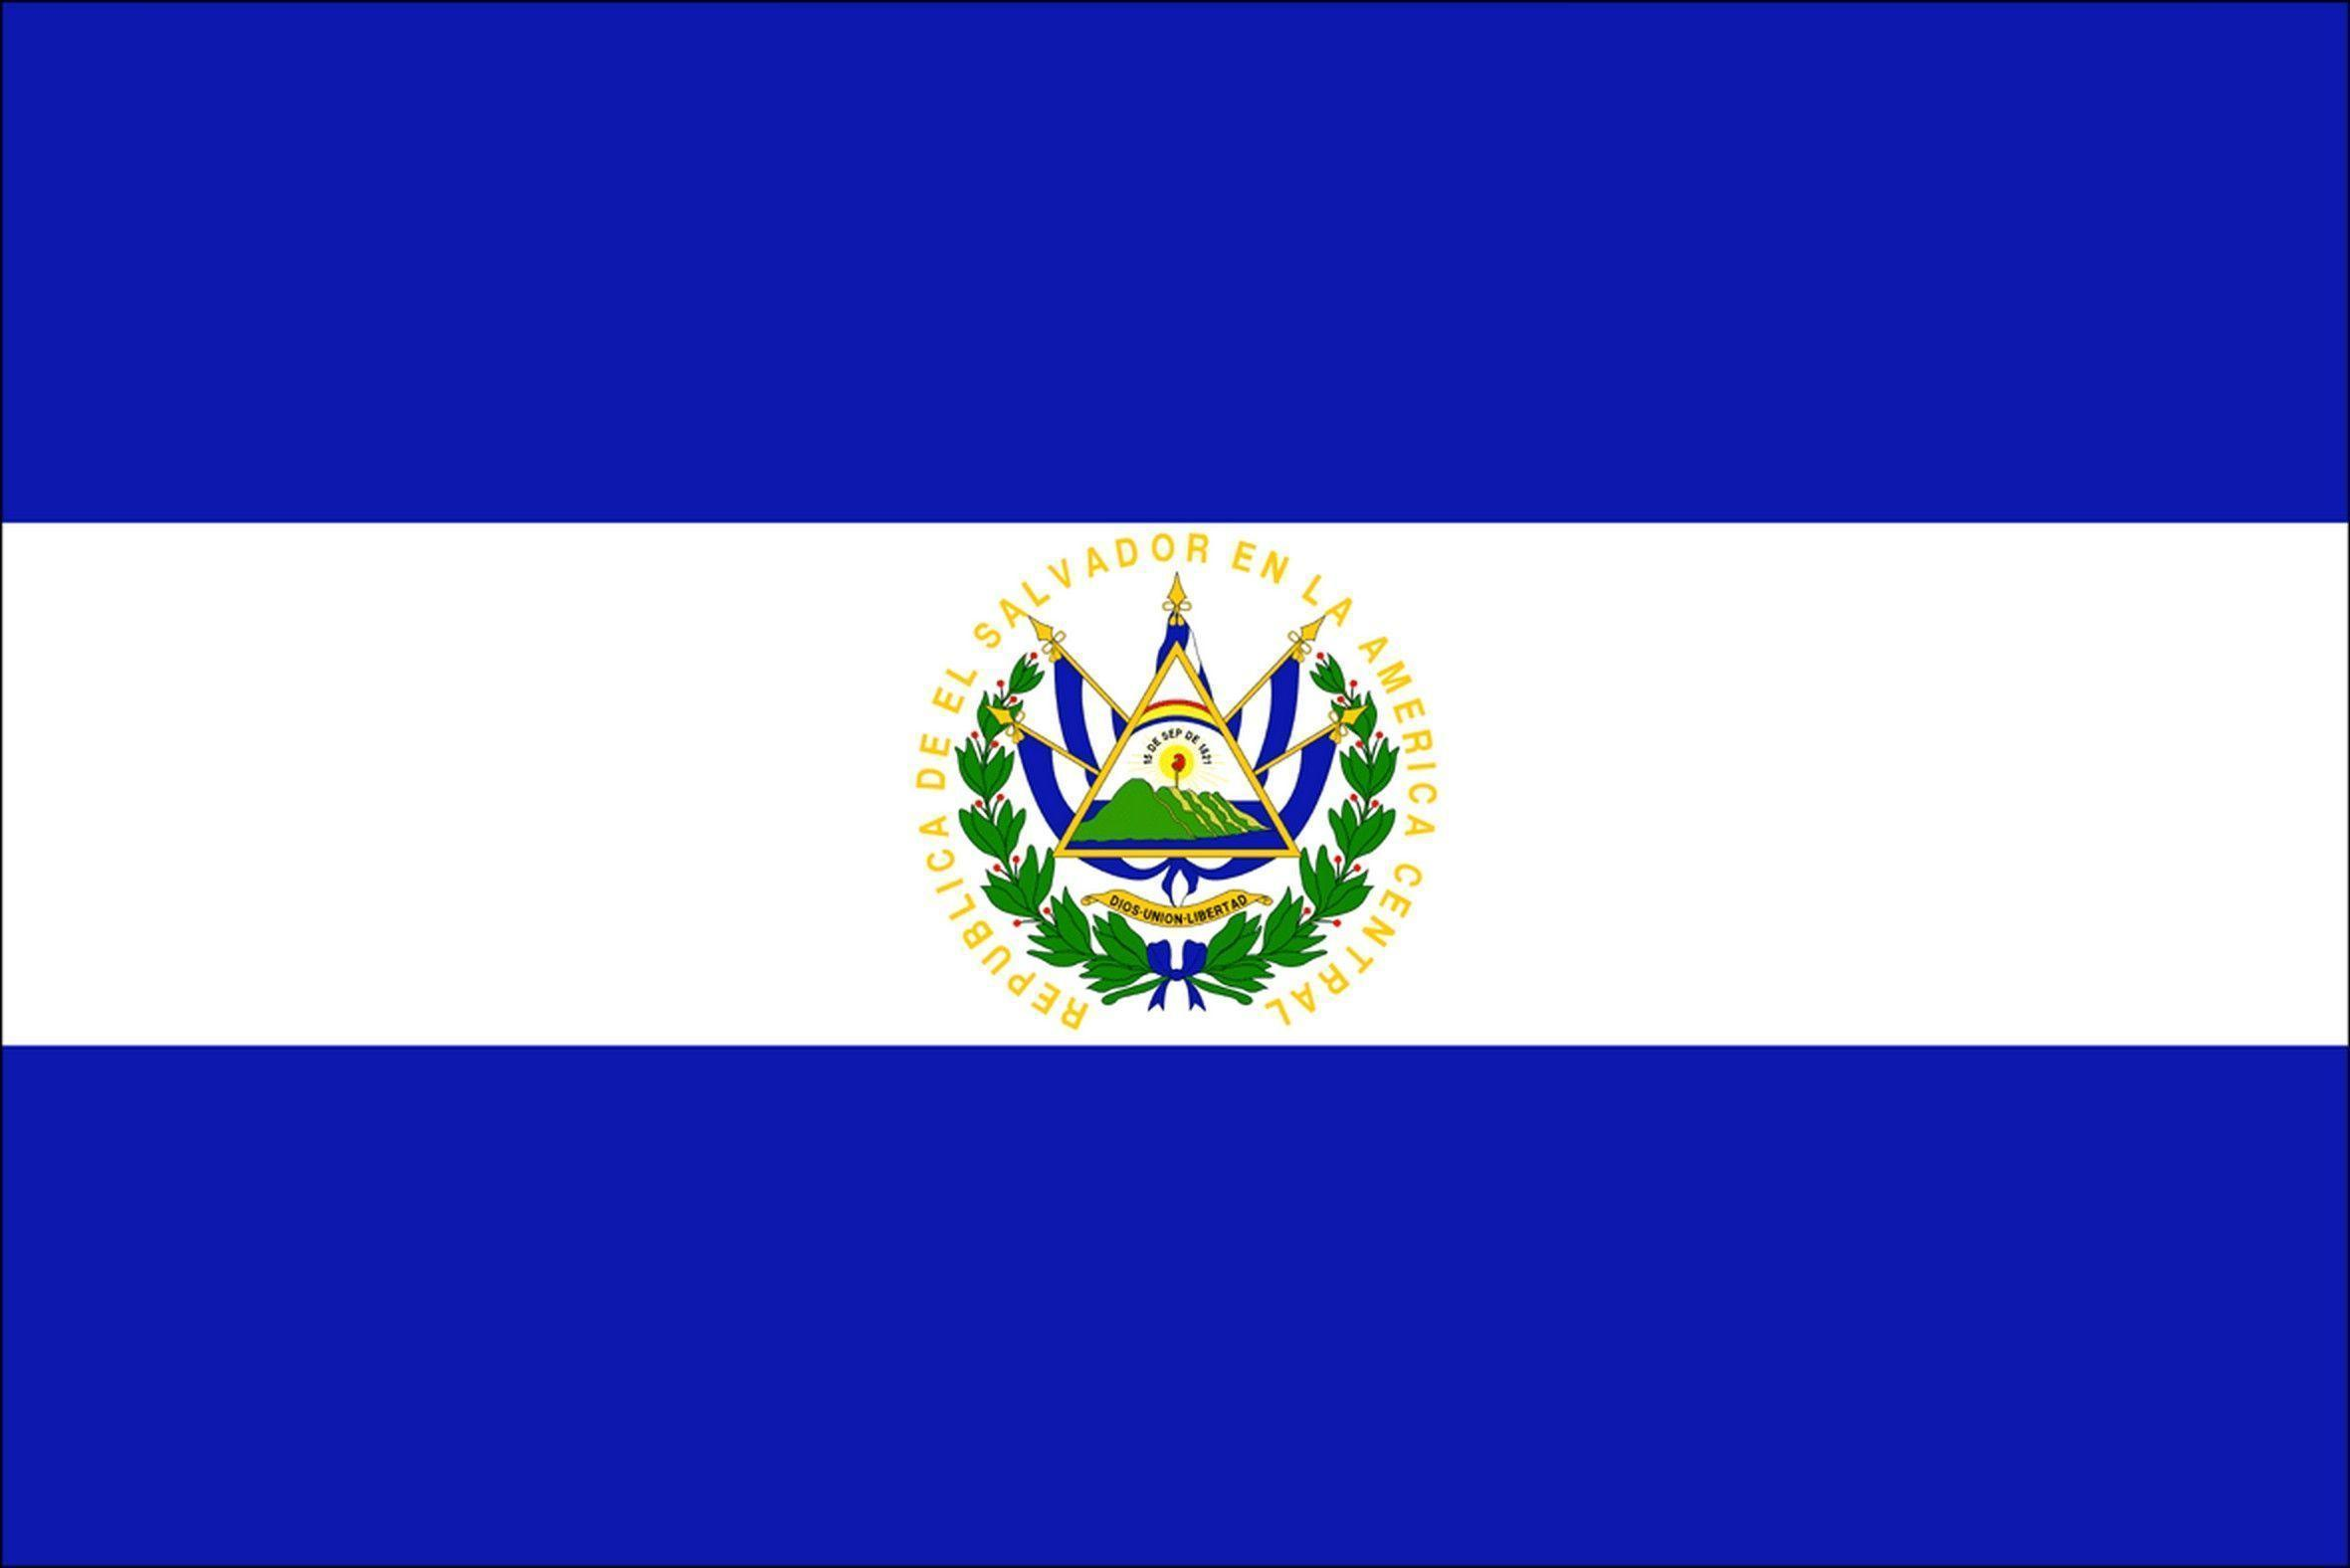 San Salvador Wallpapers and Background Images   stmednet 2362x1576